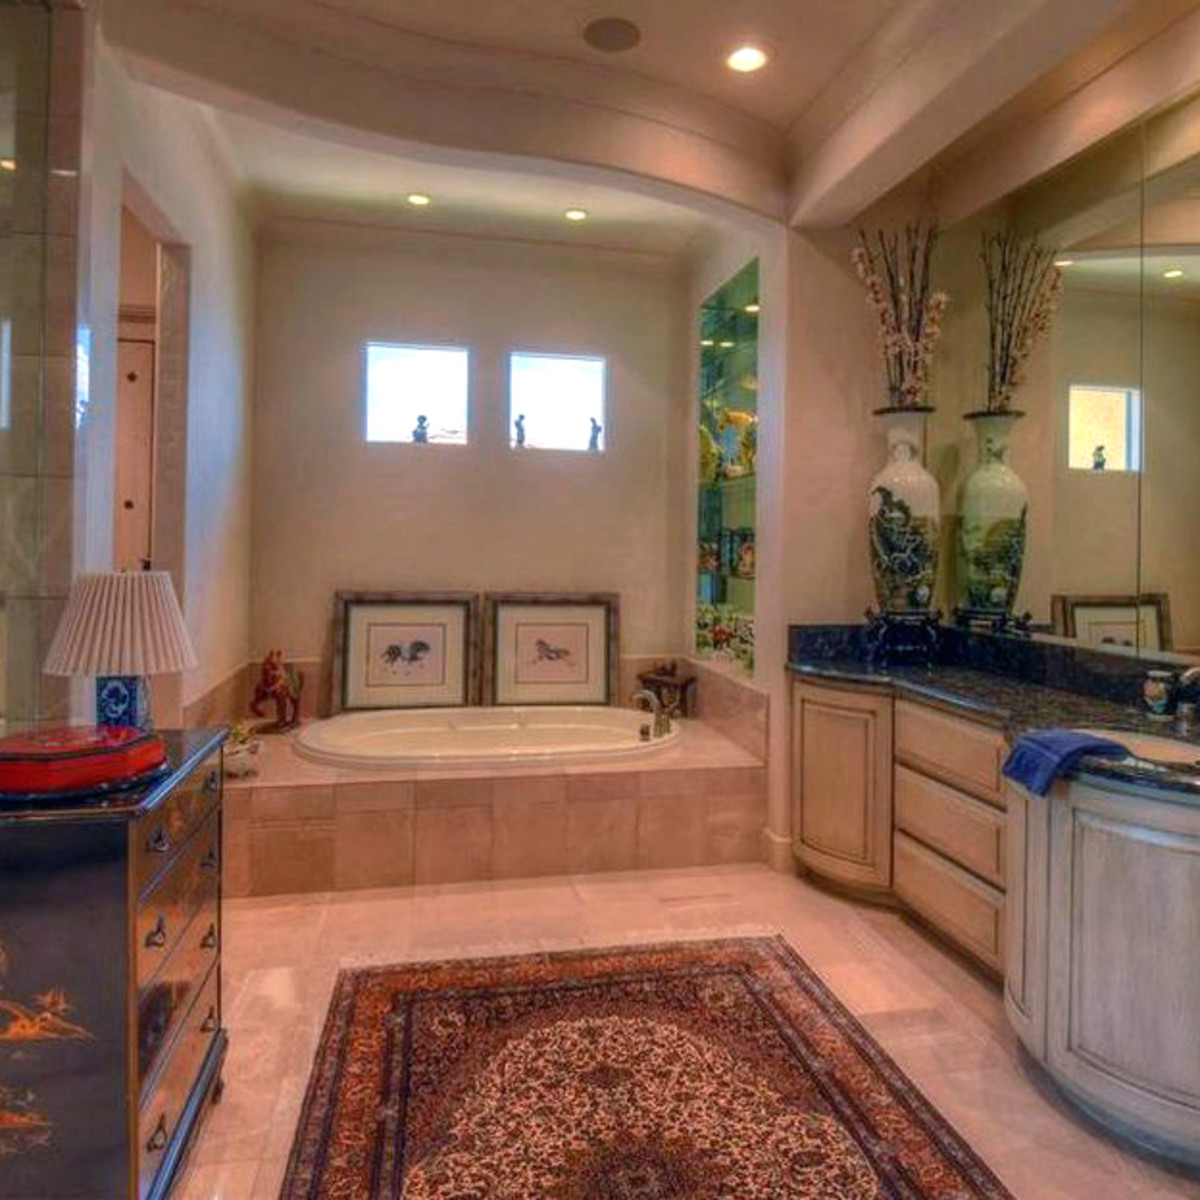 Rex Tillerson home at Horseshoe Bay, master bathroom